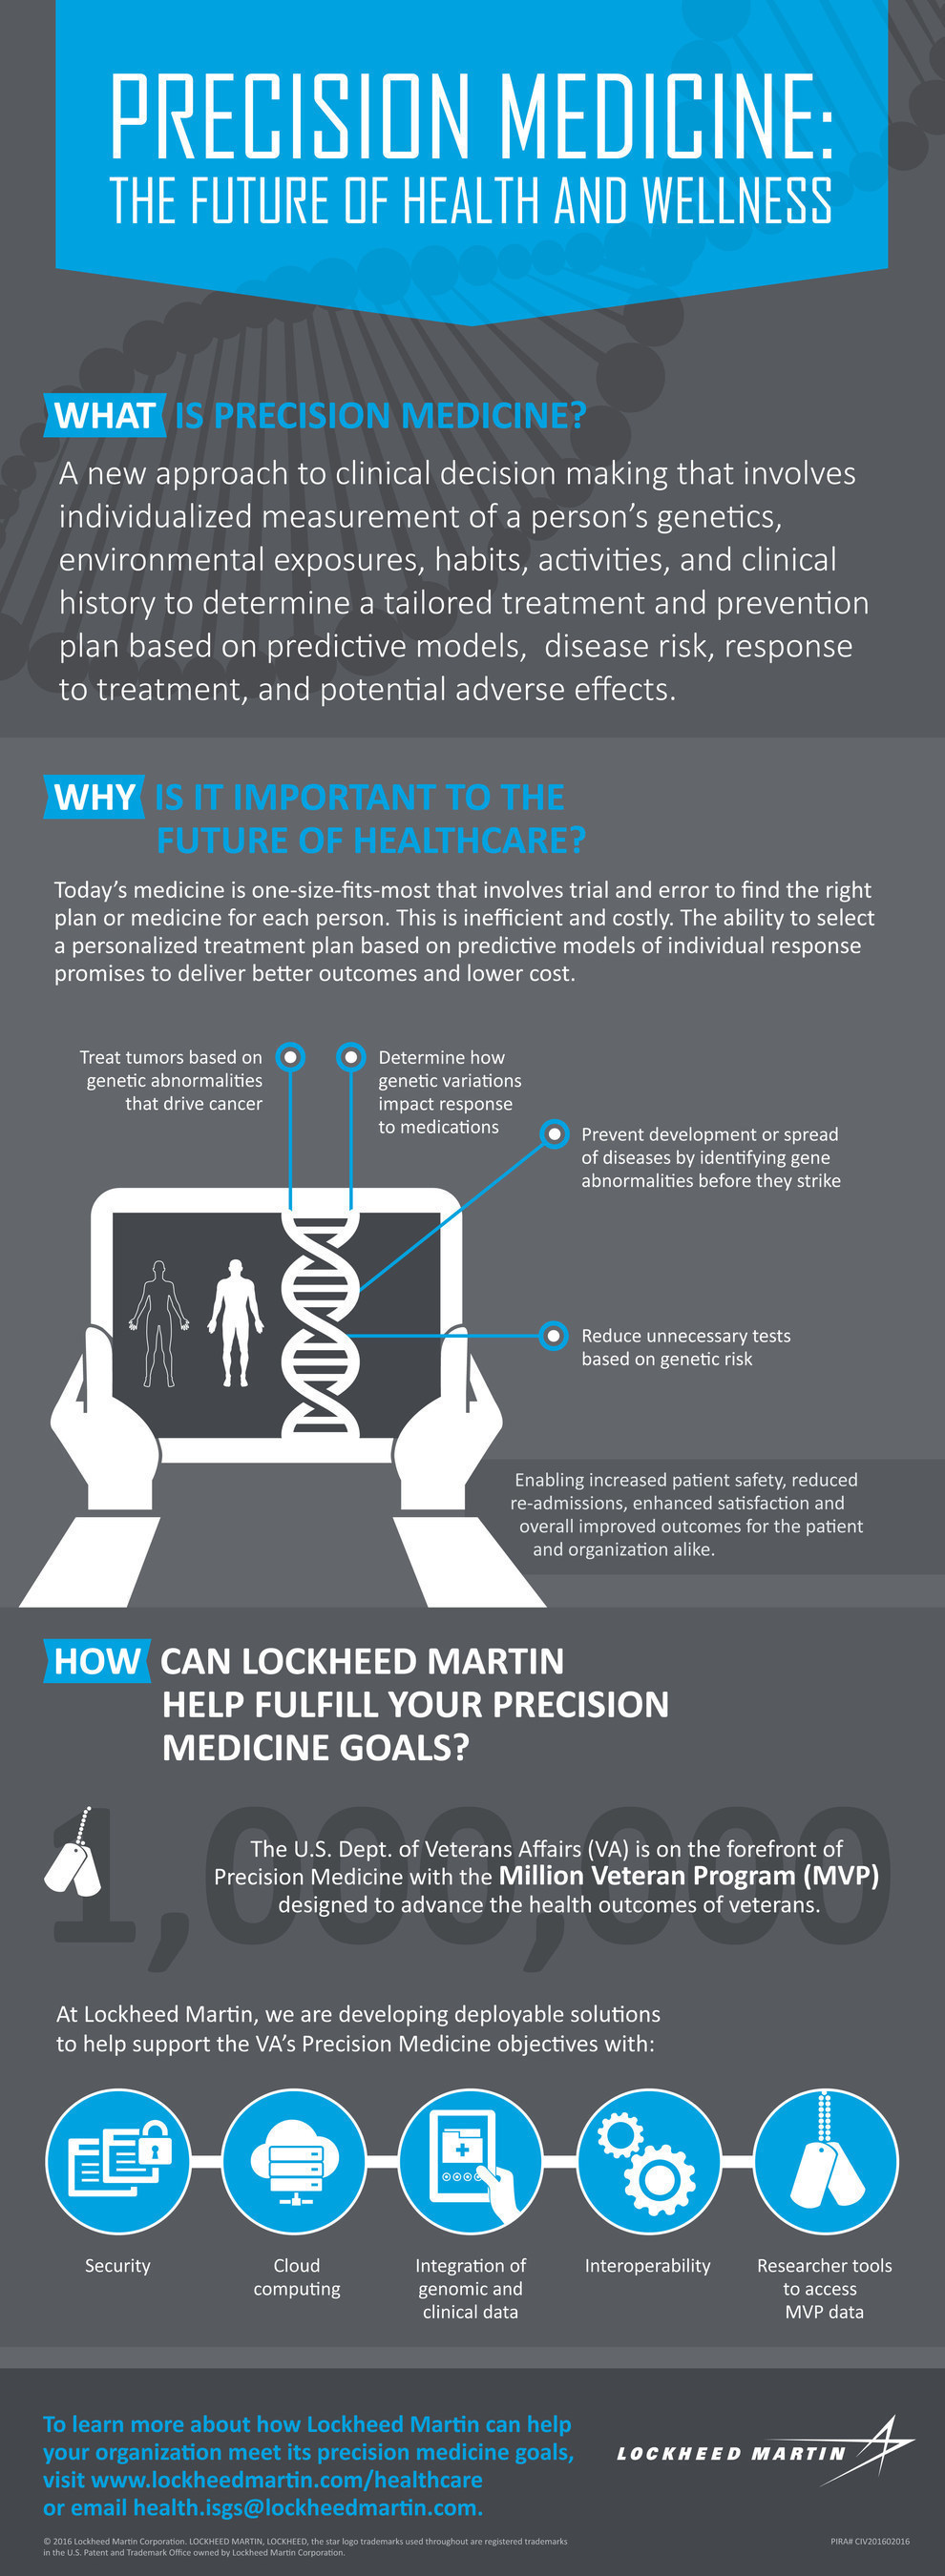 What is precision medicine and why is it important to the future of healthcare? Find answers through Lockheed ...